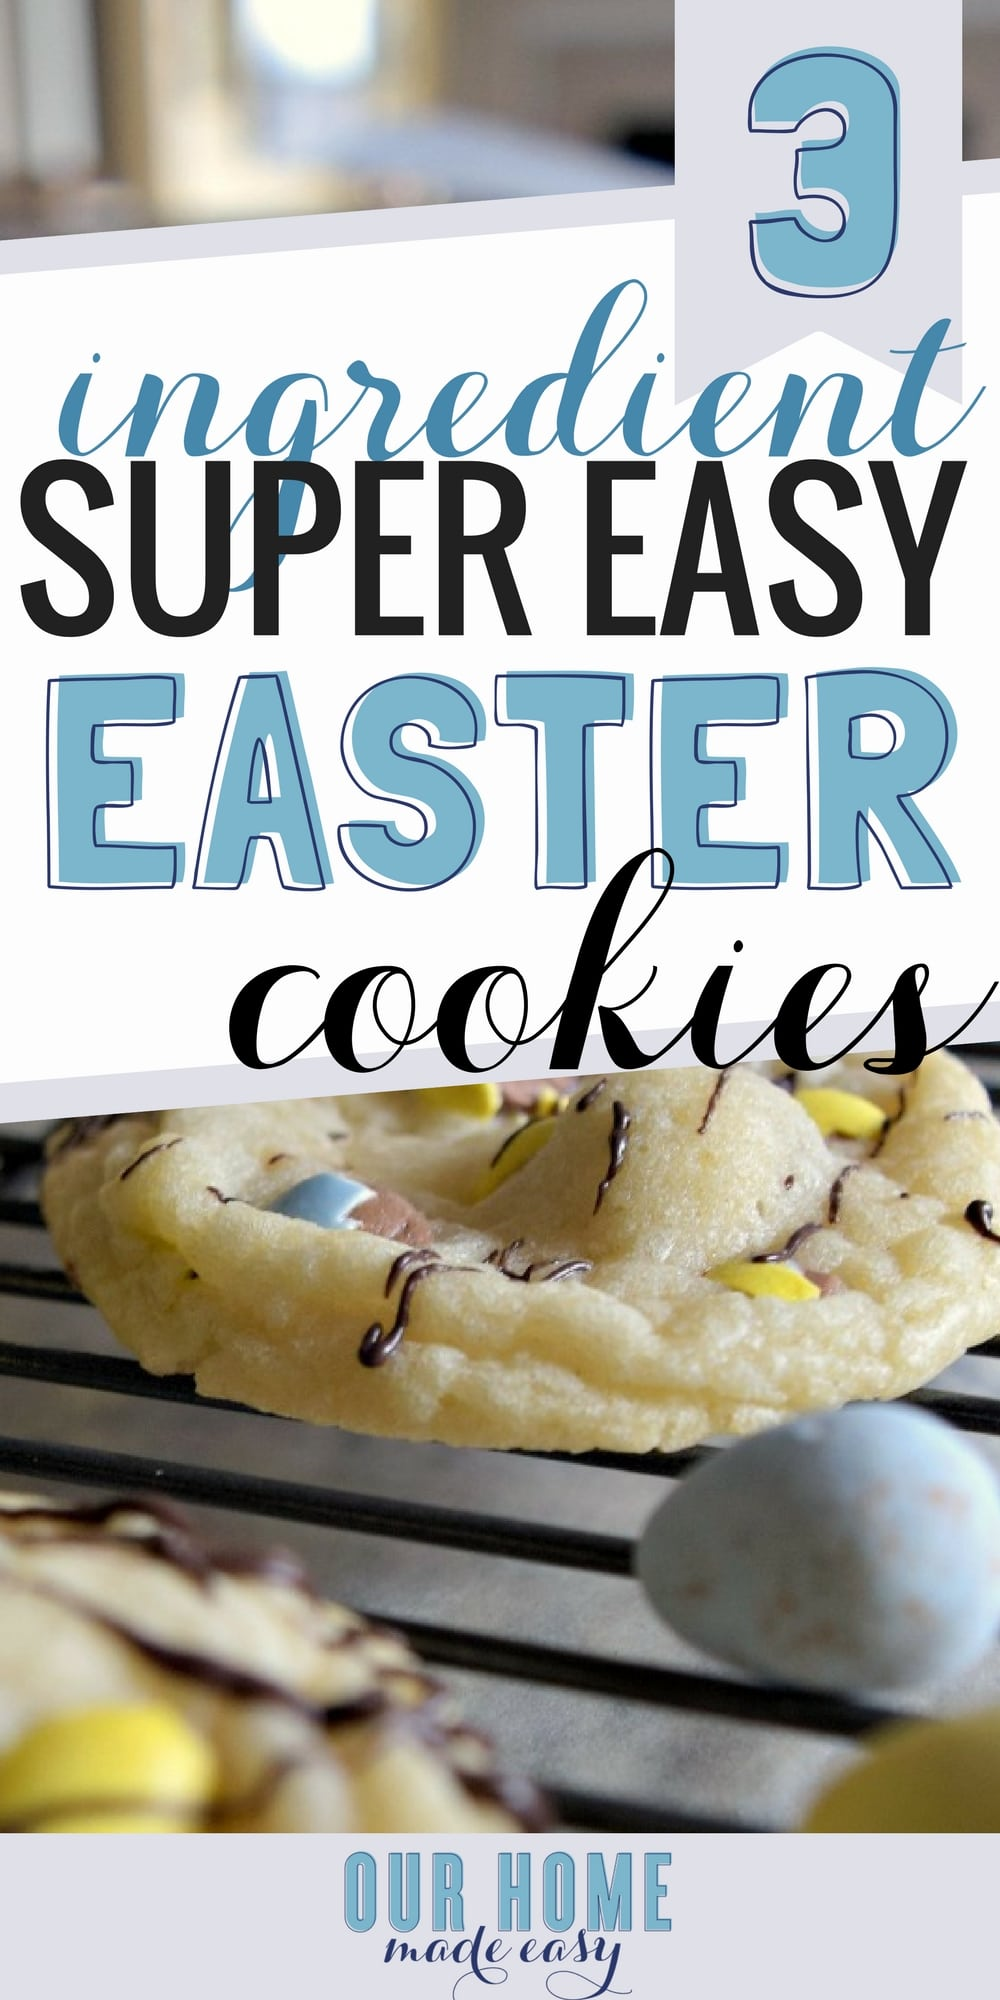 Make this easy Easter cookie recipe with only 3 ingredients! Busy mom win and you'll still get to make memories, but without the effort! Click for recipe!